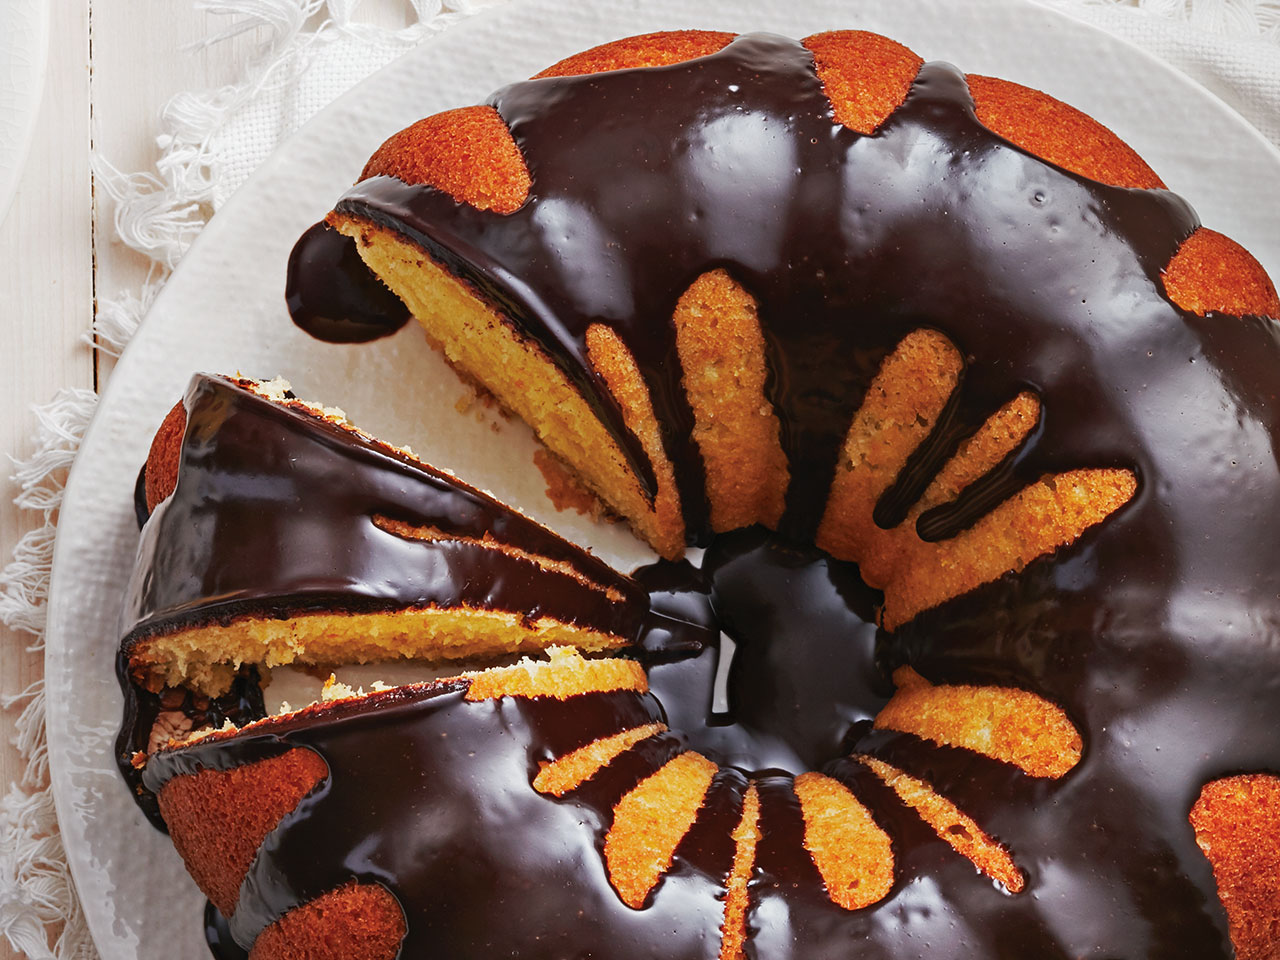 winter baking: Homemade jaffa cake: Orange bundt cake with chocolate sauce